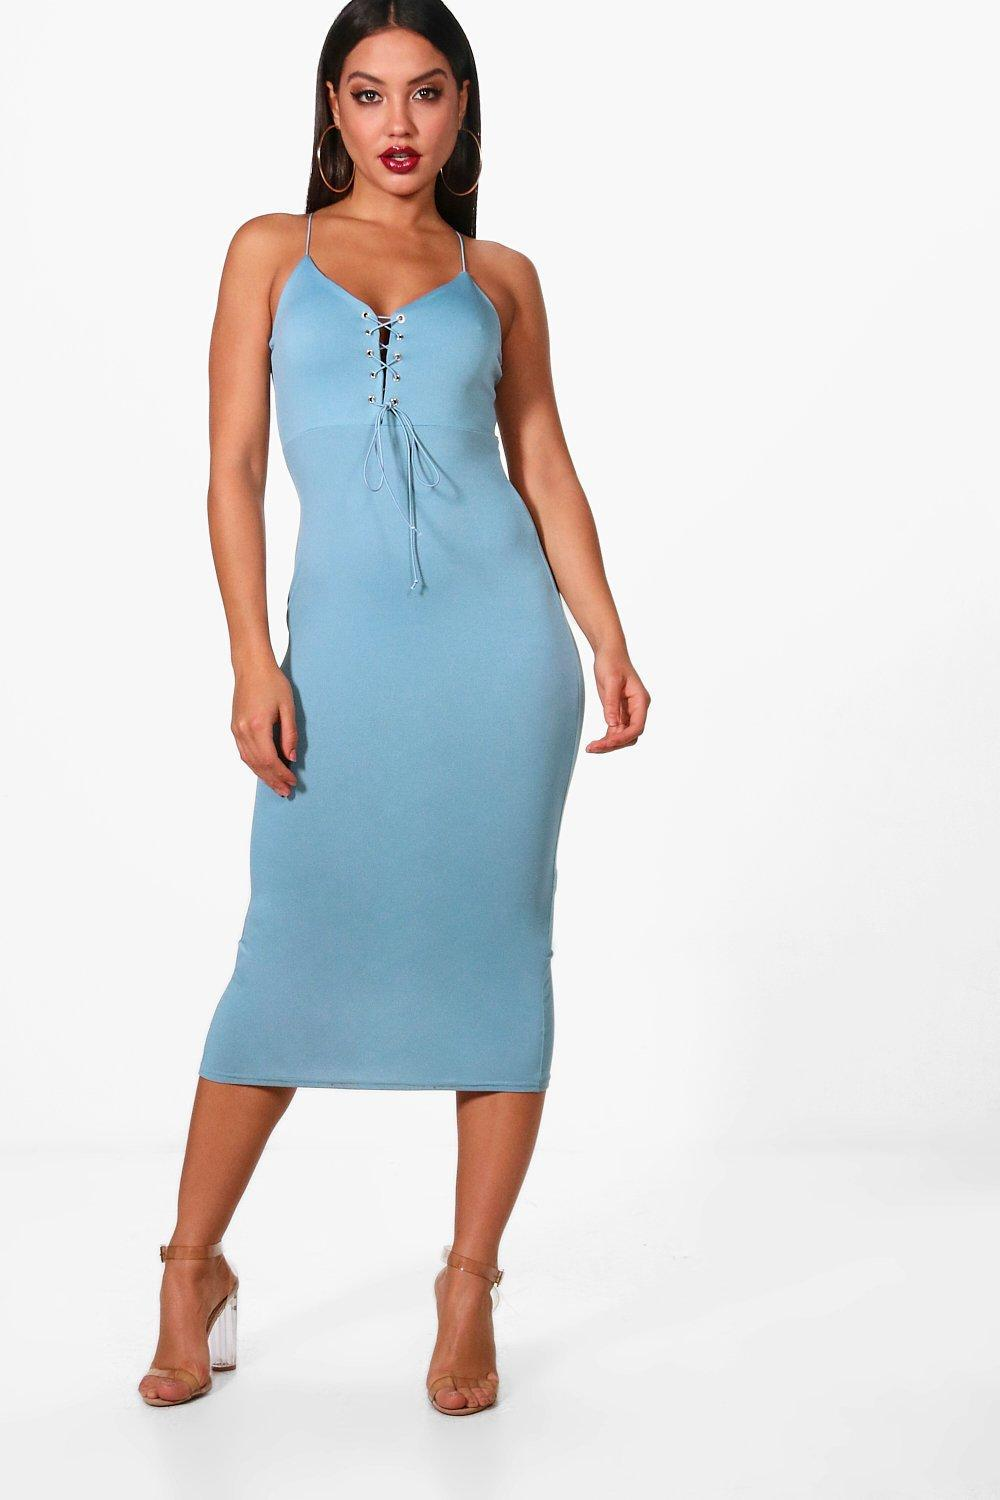 Lyst - Boohoo Allana Lace Up Plunge Eyelet Midi Dress in Blue